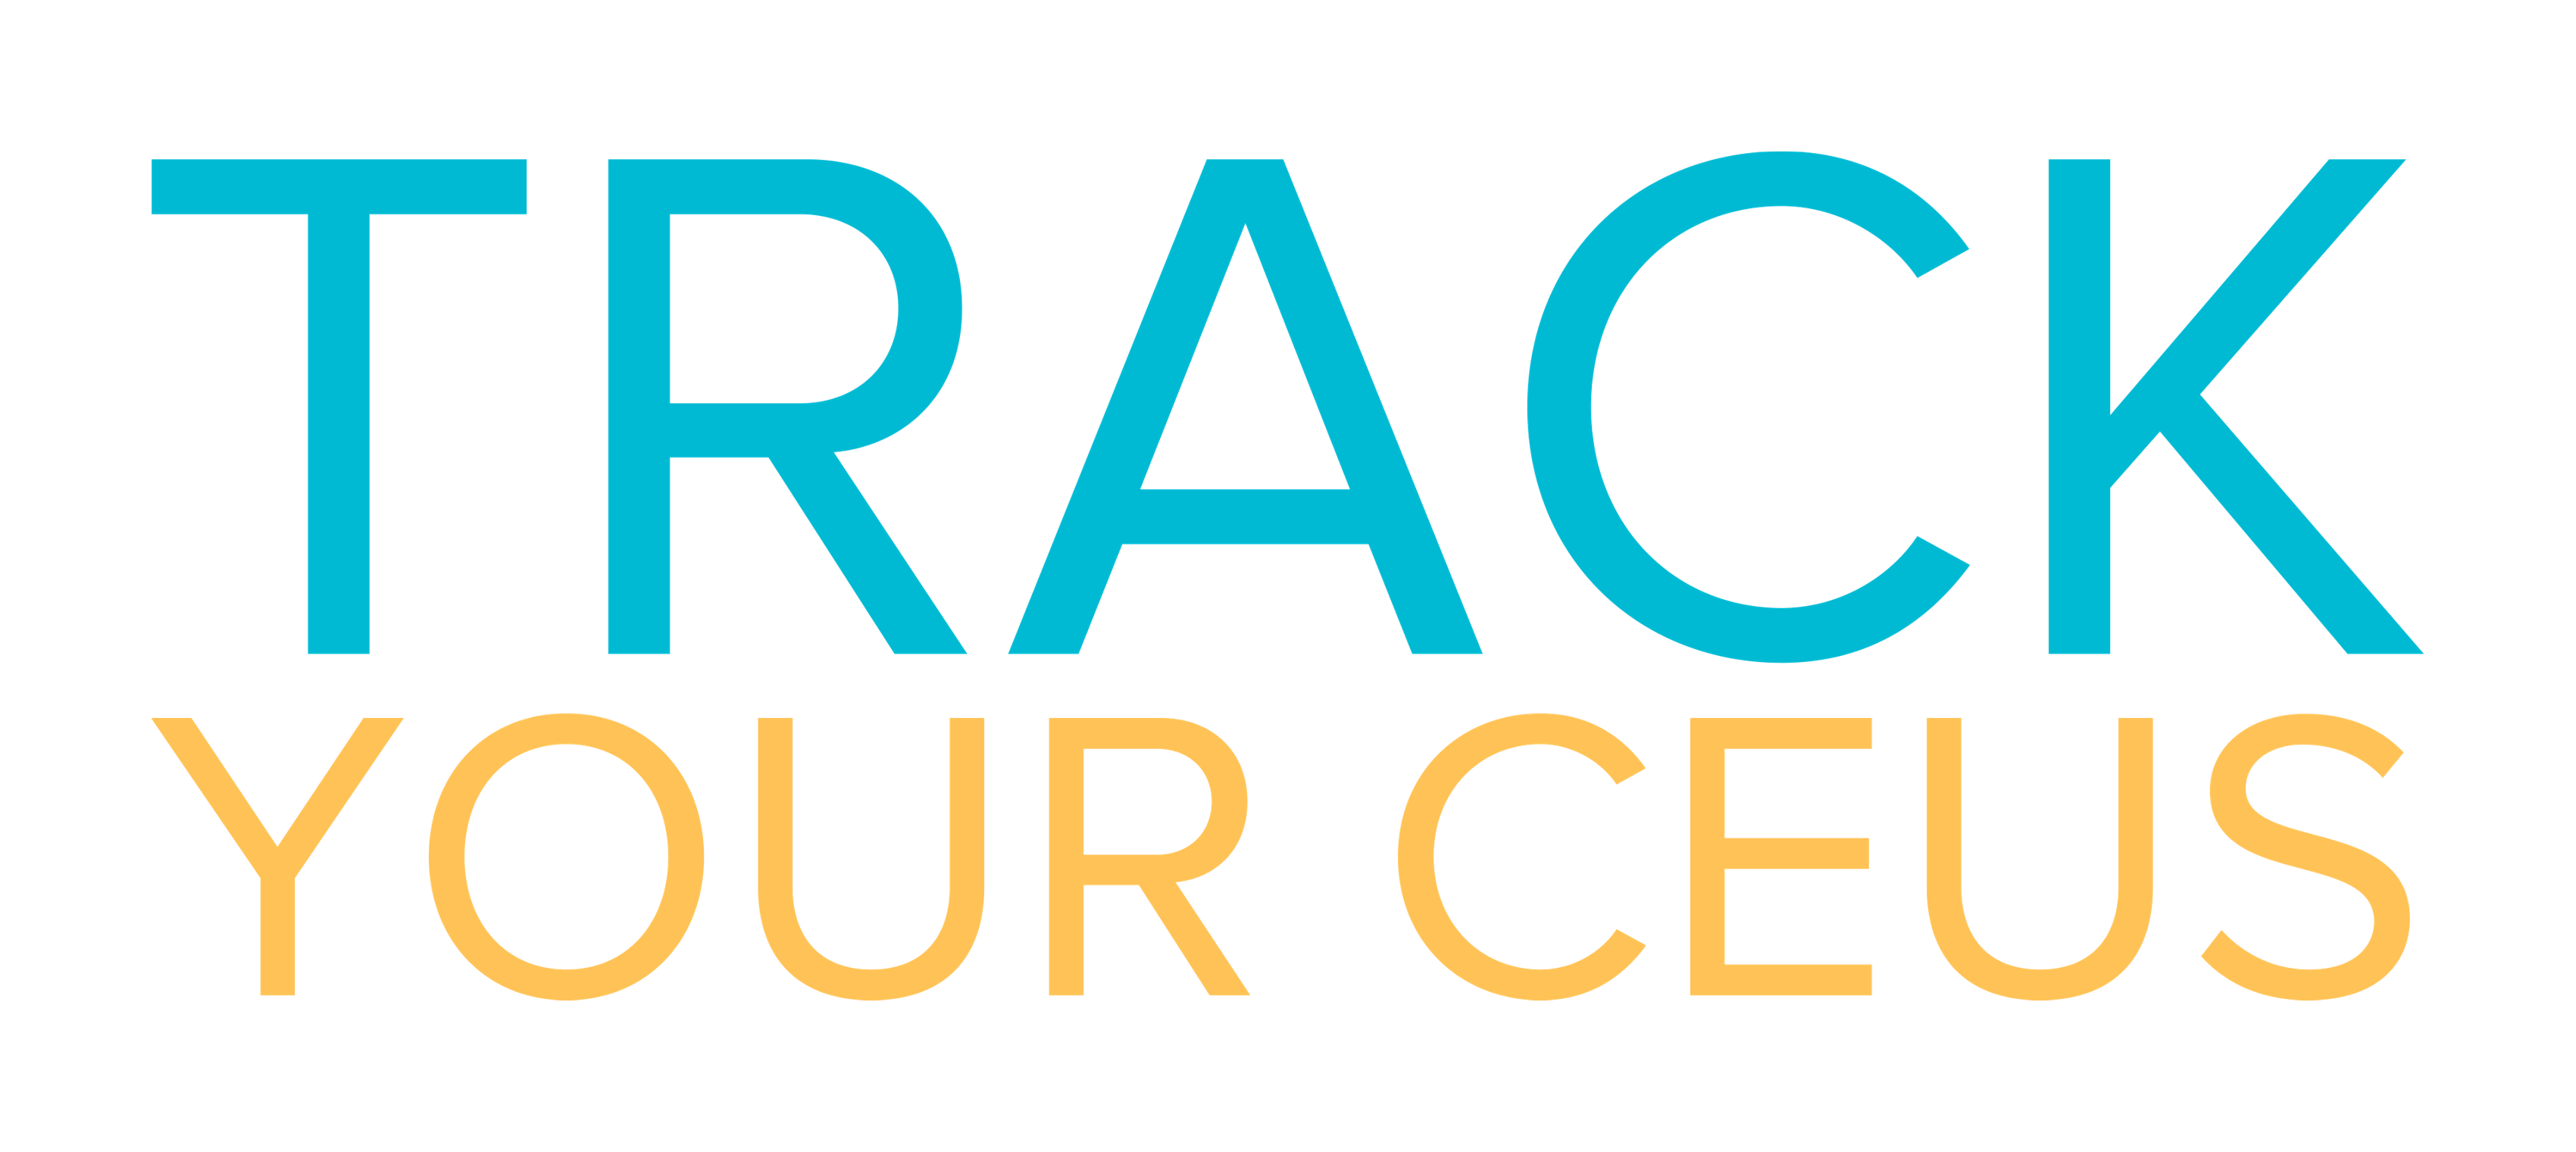 TrackYourCEUs Help Center home page